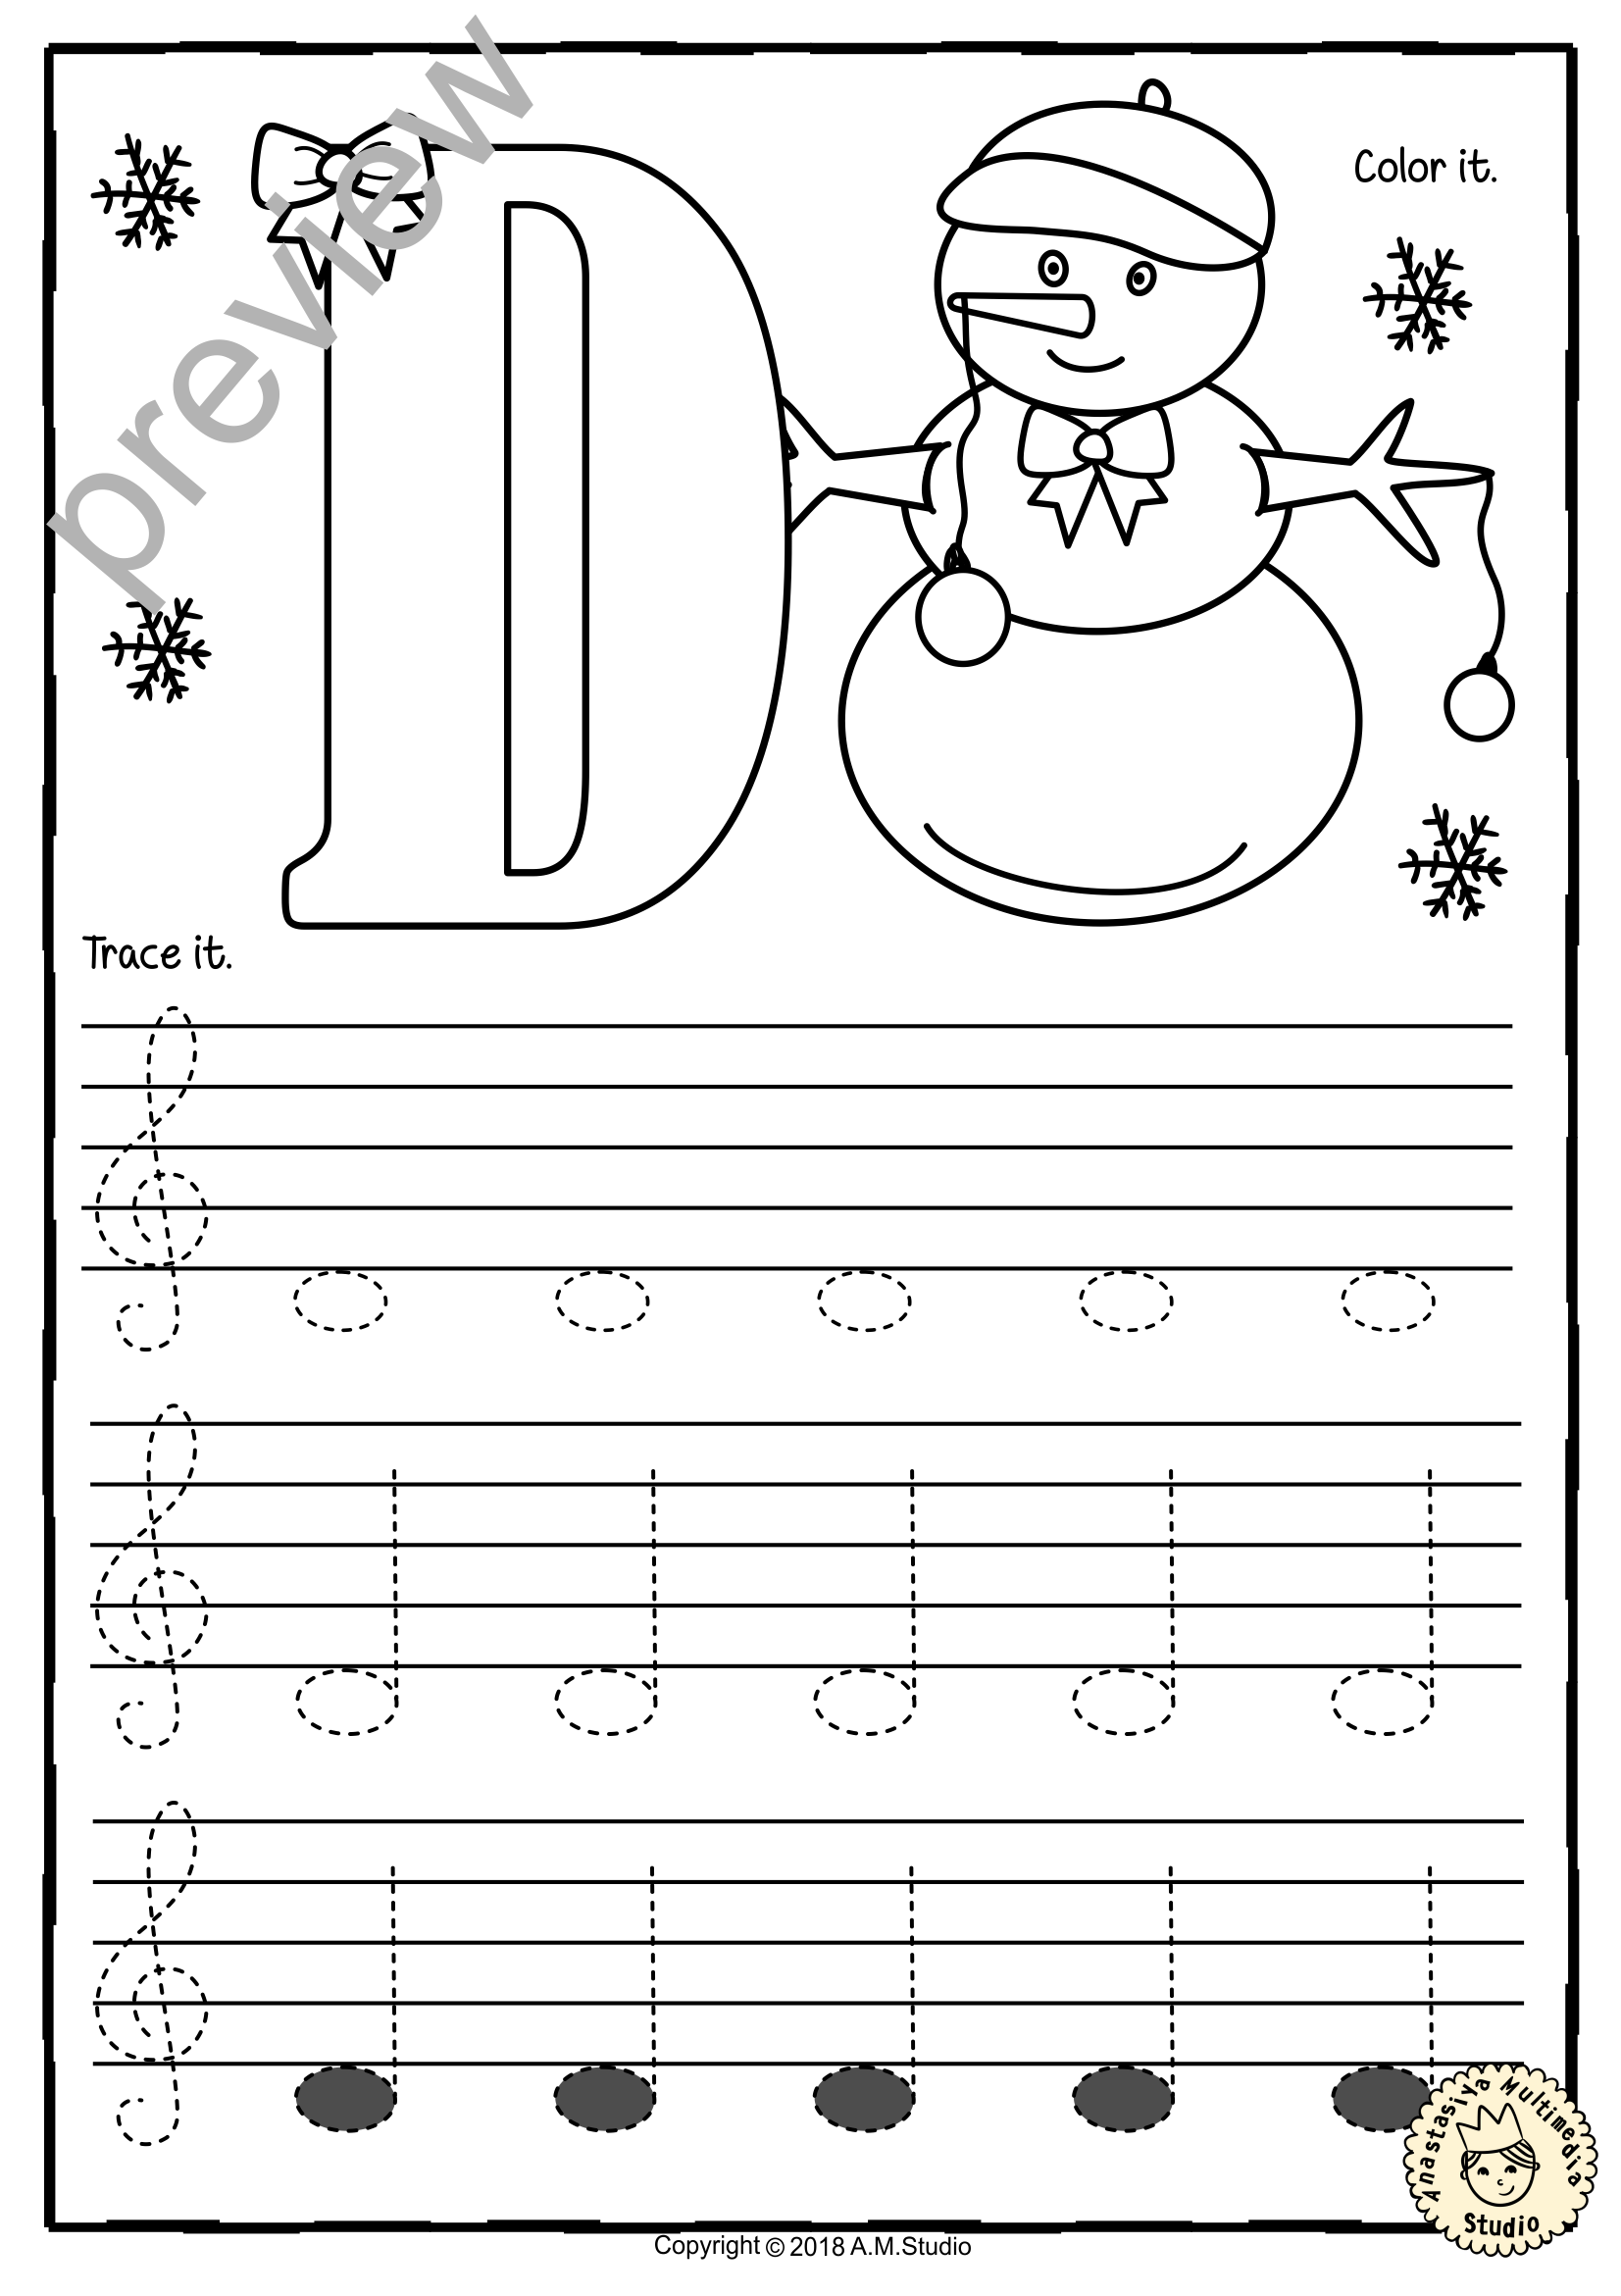 Treble Clef Tracing Music Notes Worksheets For Winter And Christmas